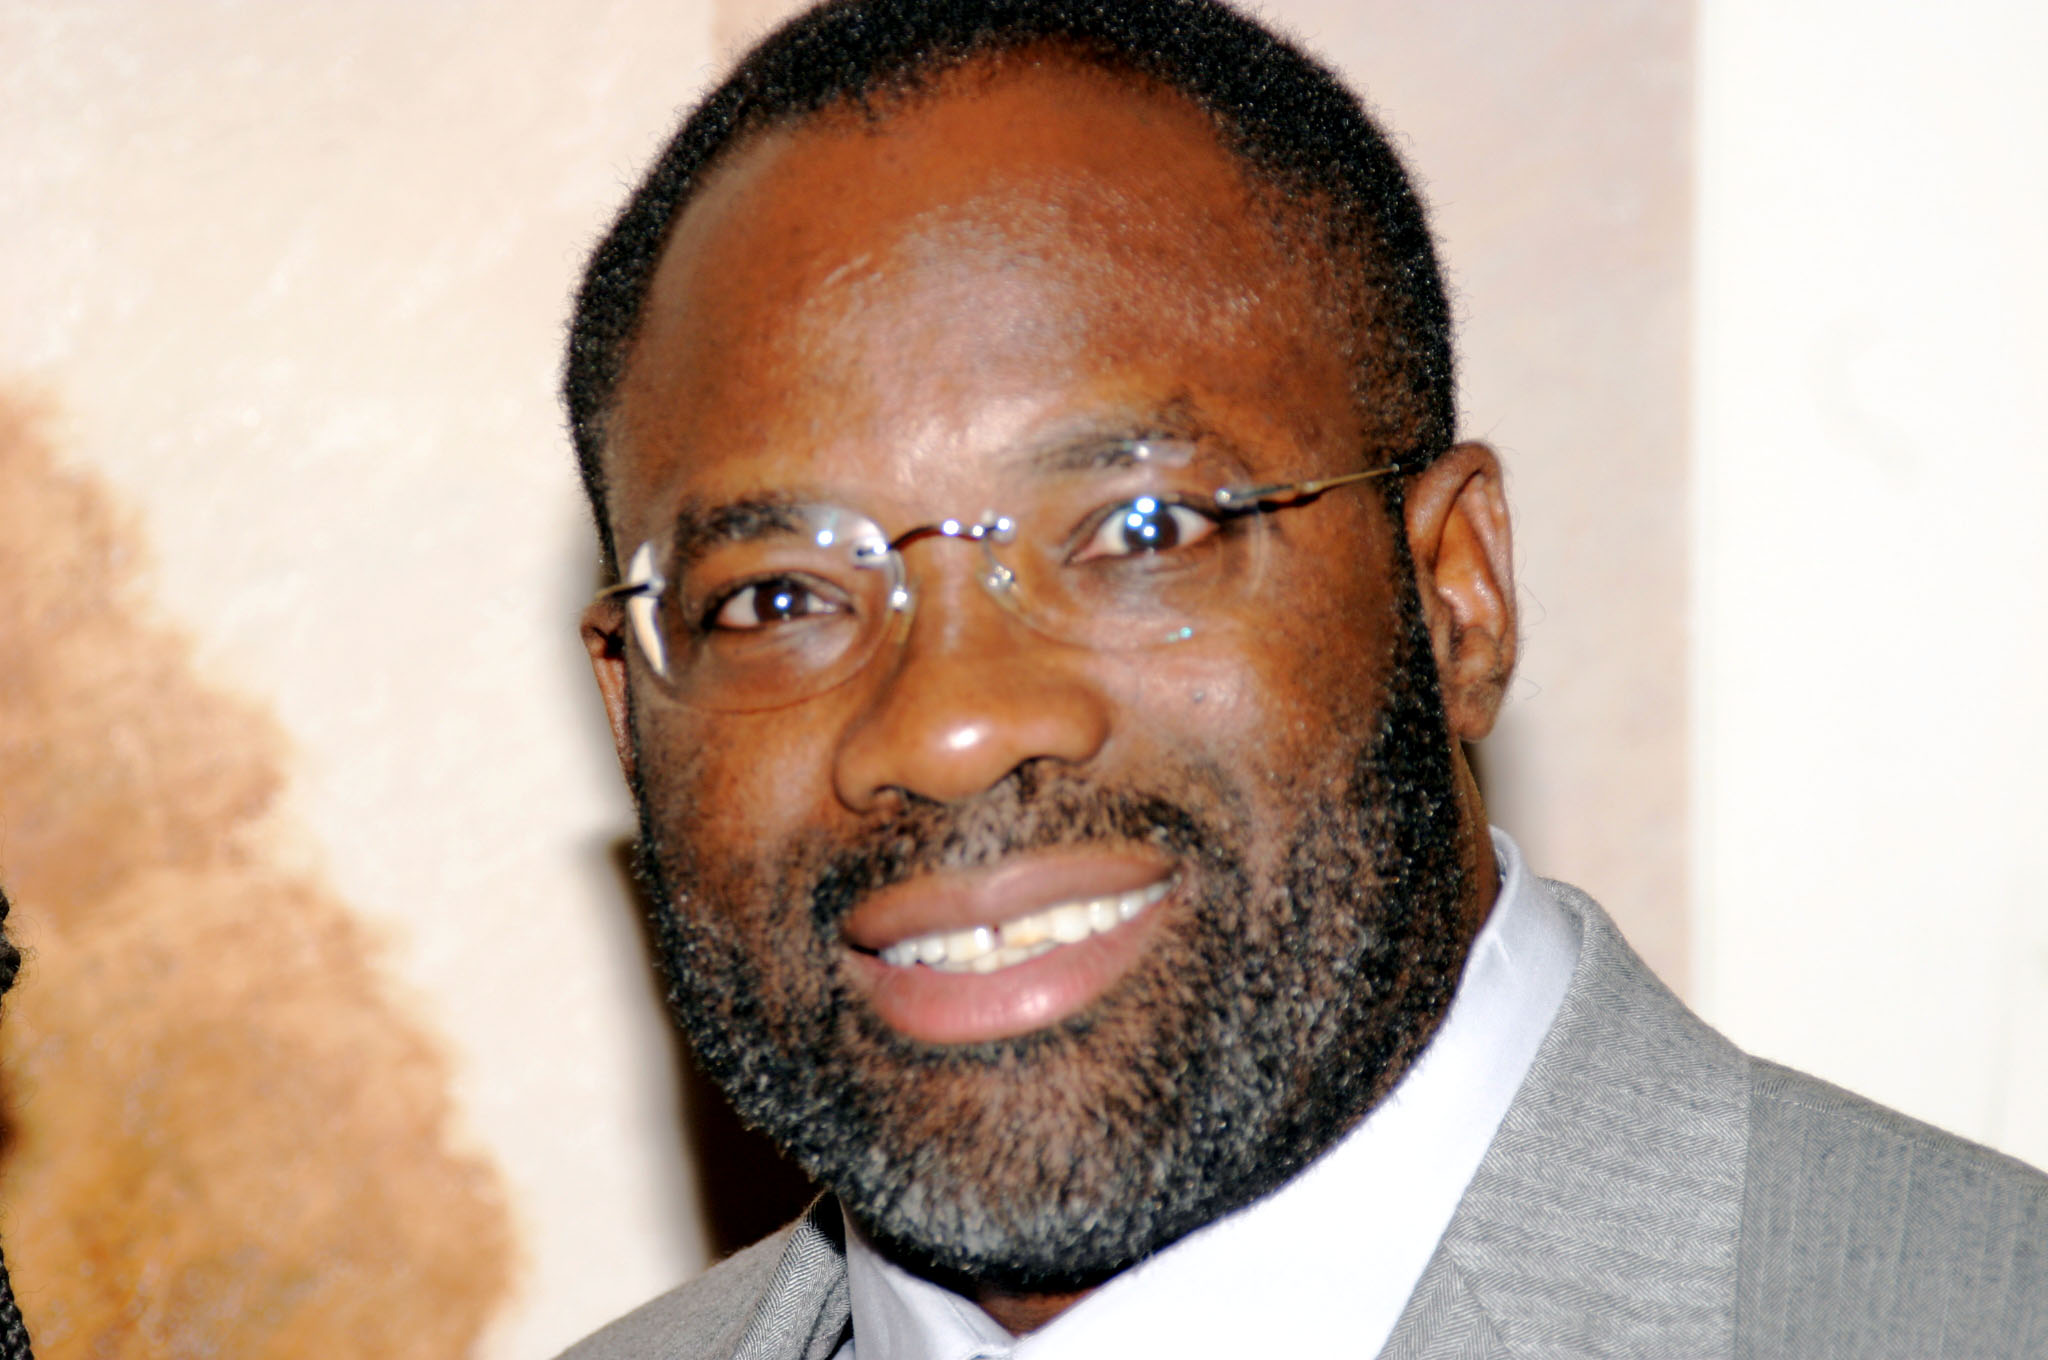 the calculus philip emeagwalis biography a nigerian engineer mathematician computer scientist and ge Philip emeagwali was born in akure, ondo state of nigeria on august 23, 1954 he is an engineer, mathematician, computer scientist and geologist he hailed from anambra state nigeria, and was raised-up in onitsha.